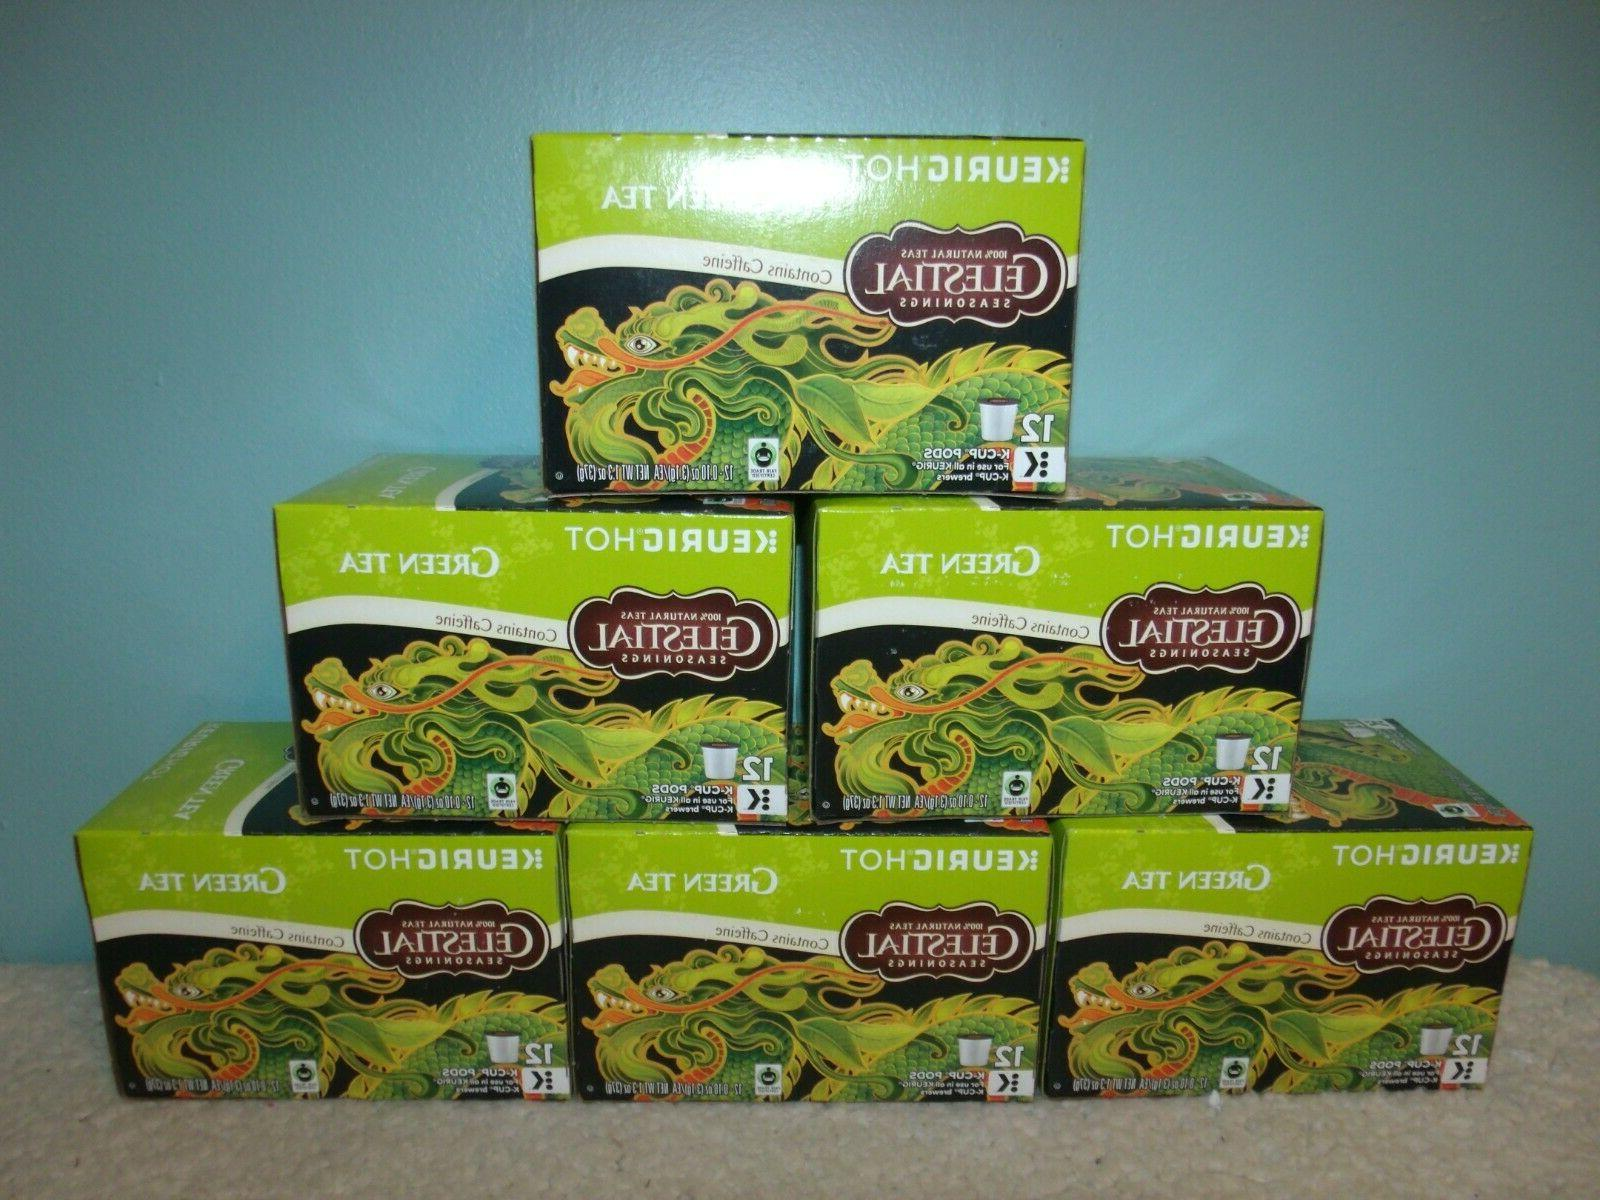 Keurig Celestial Seasonings Green Tea K-cups 12 Count